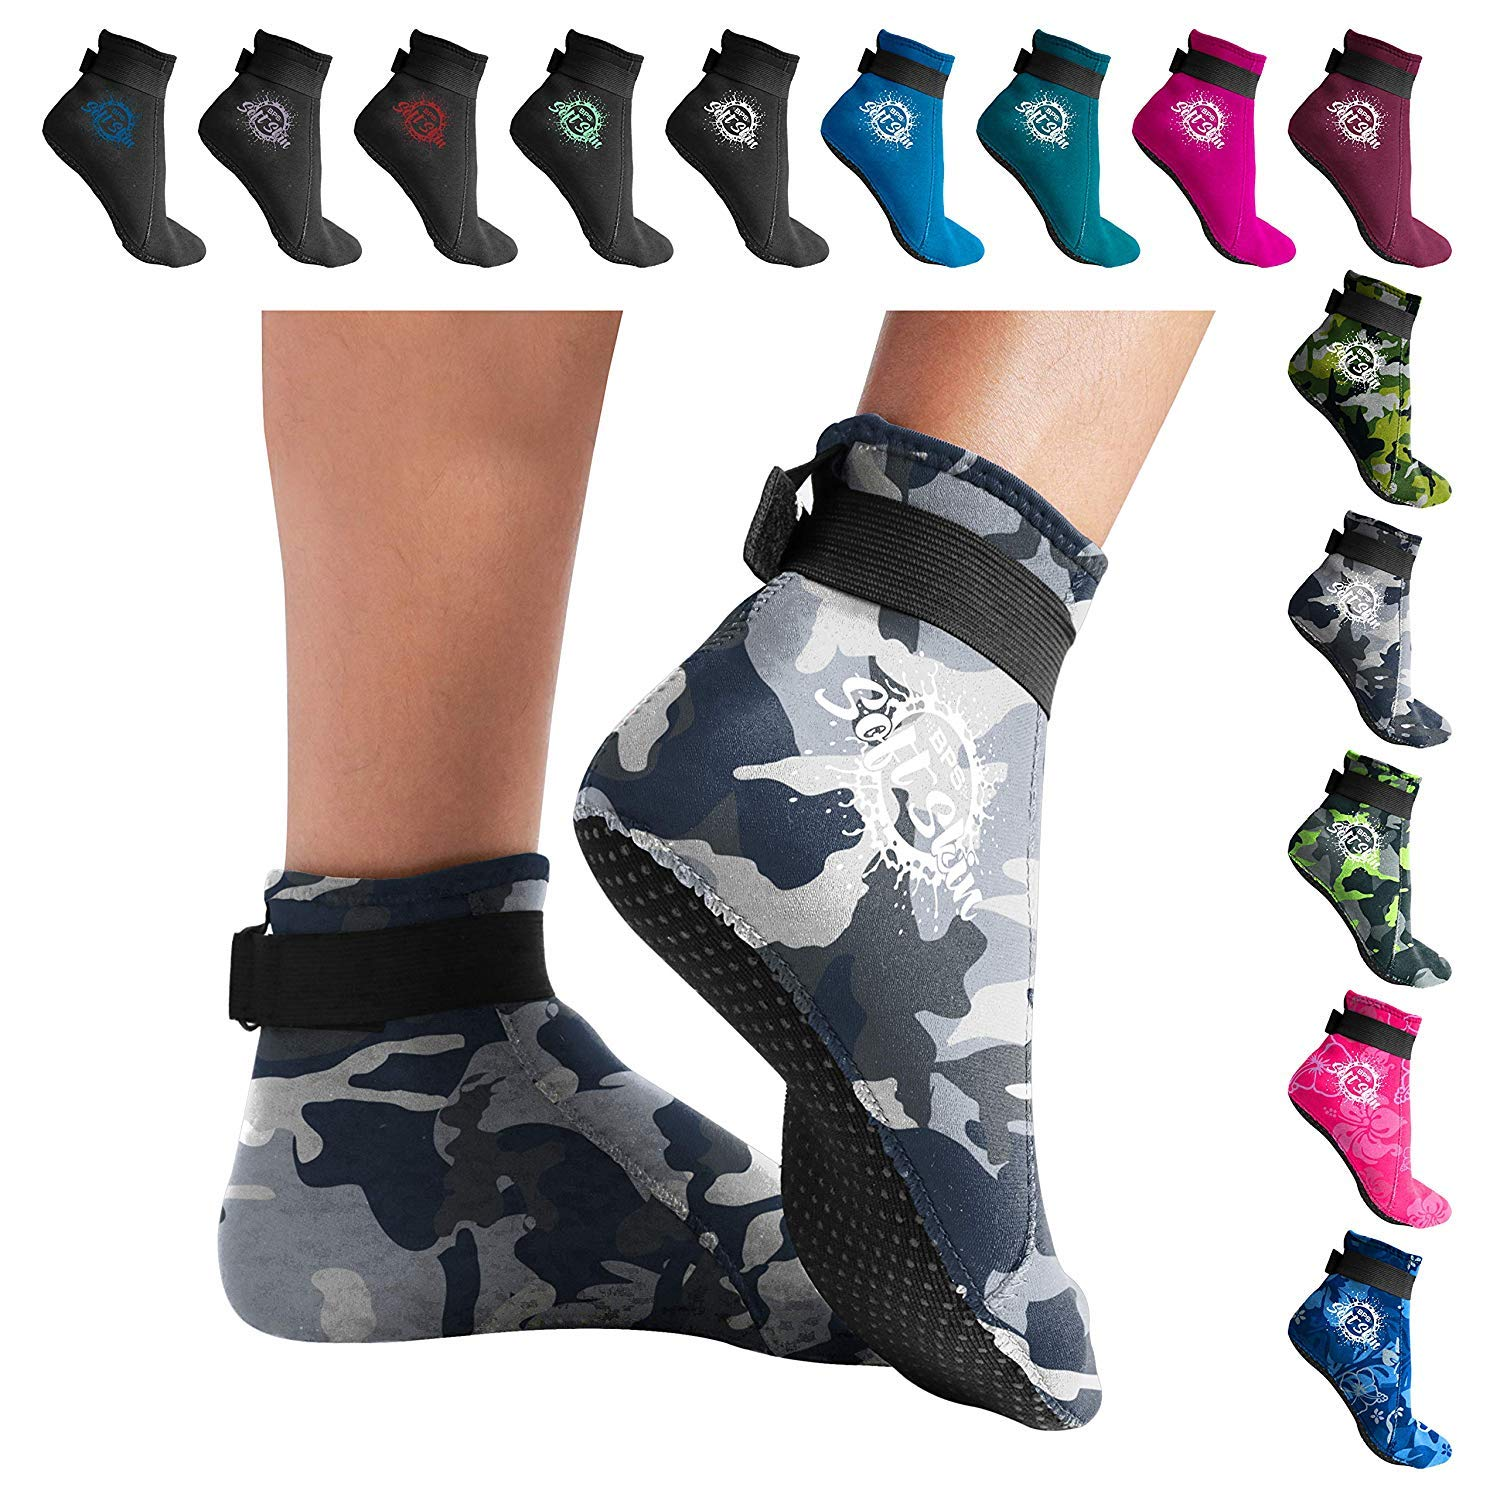 BPS 'Soft Skin' 3mm Neoprene Diving Socks with Grip - Sand, surf, Snorkel, Kayak, and Other Water Sports - Low Cut (Grey Camo, XS)